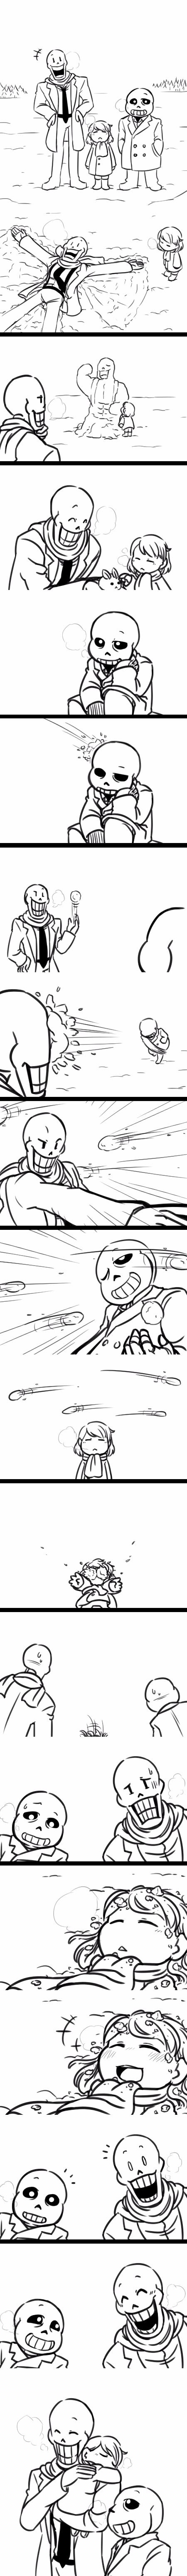 Papyrus, Frisk, and Sans - MobsterUT AU - comic